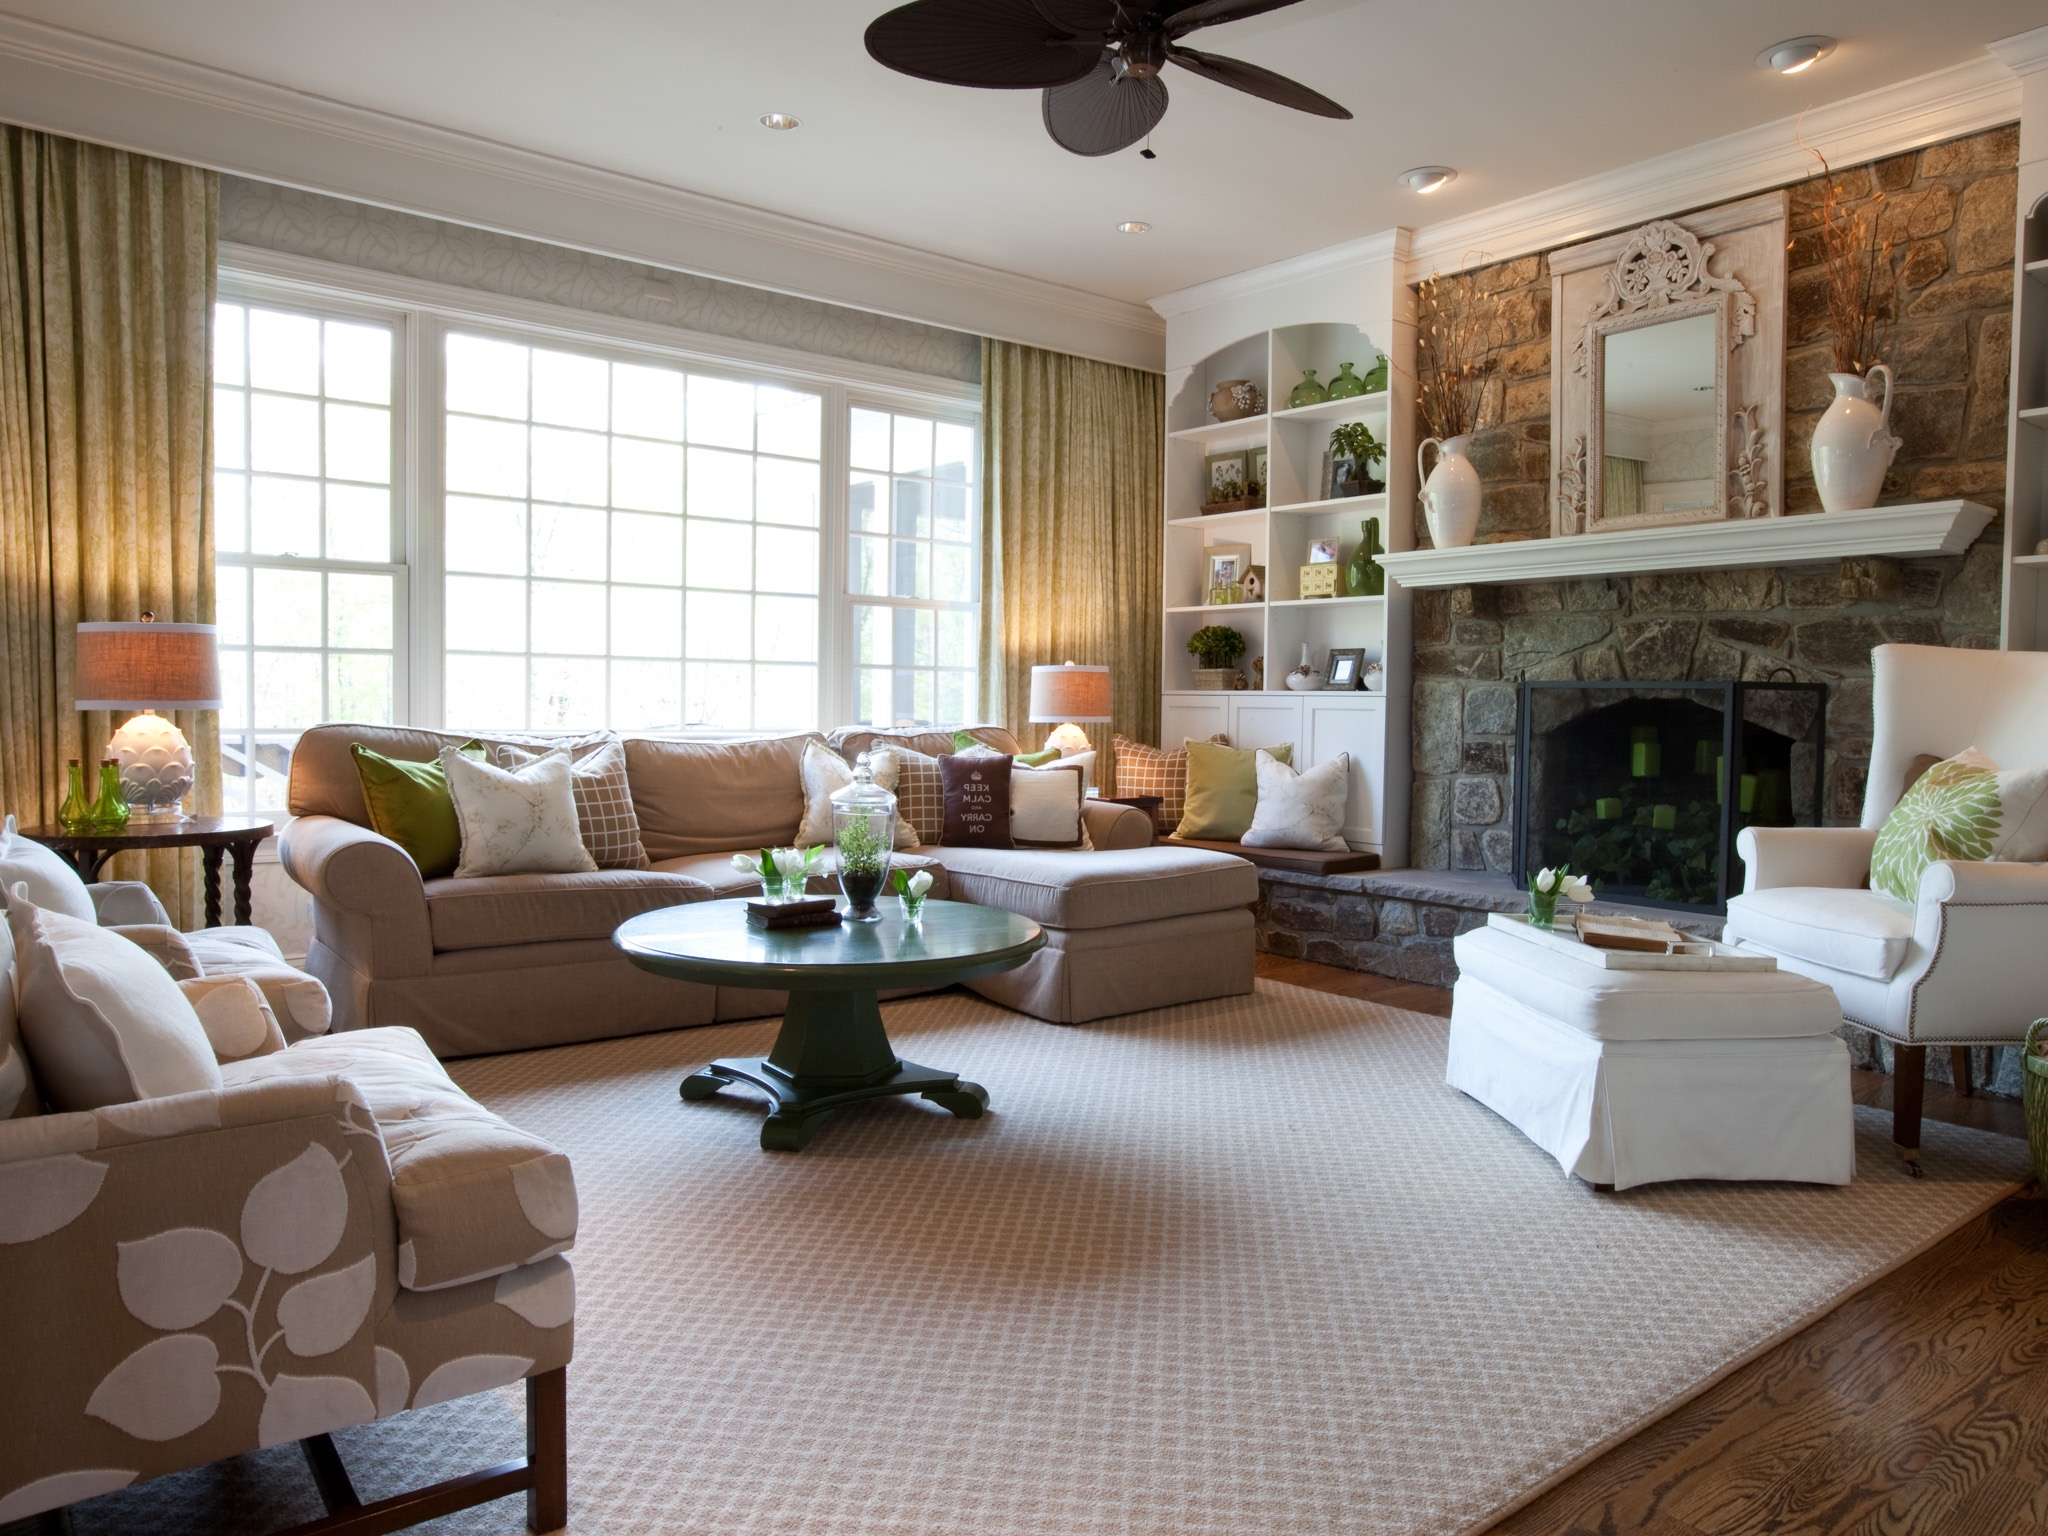 American Living Room In Country Style With Stone Fireplace (View 6 of 18)